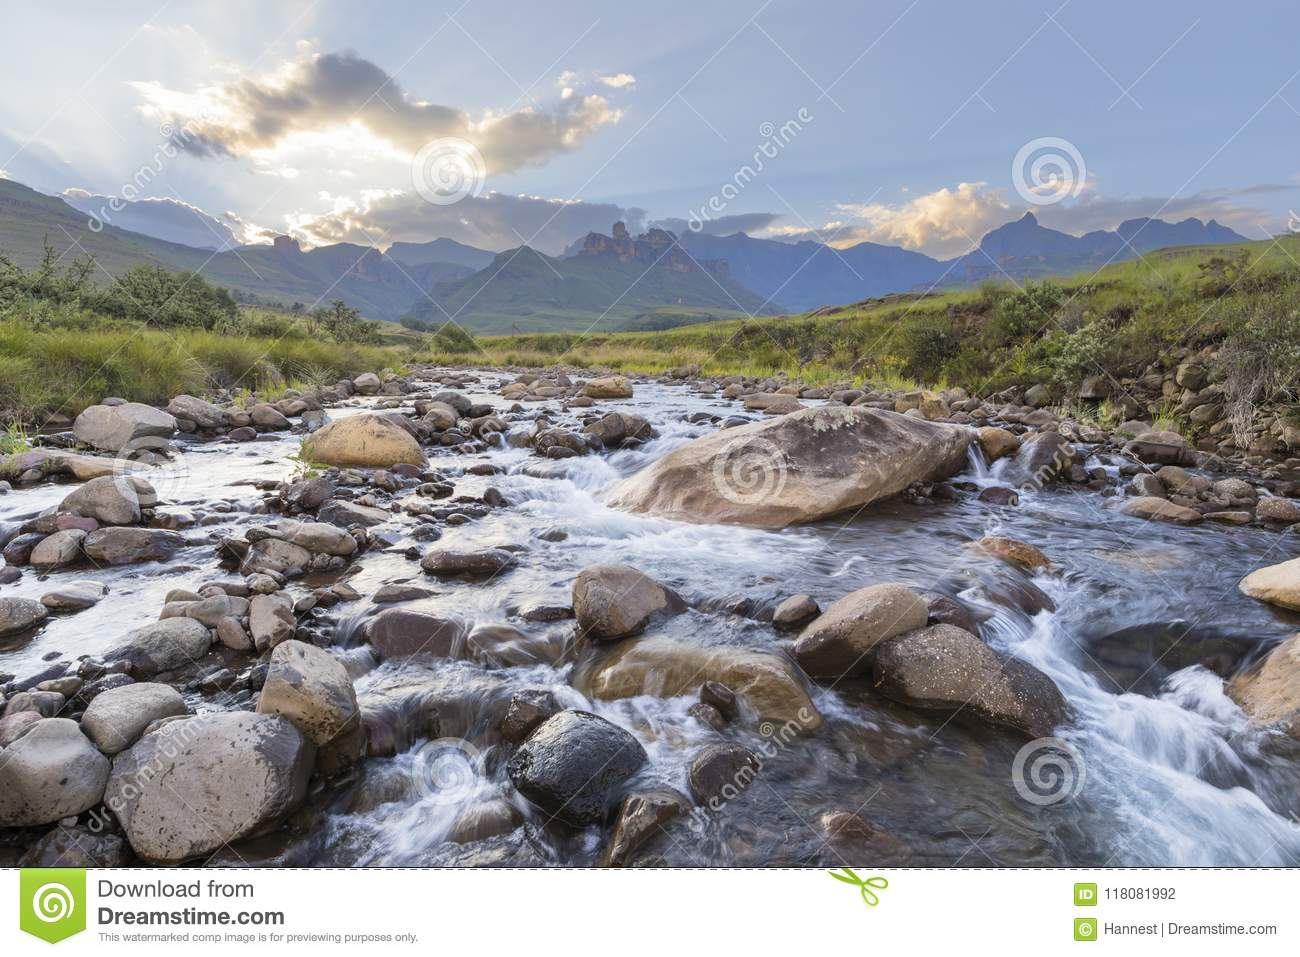 Large rocks in the river